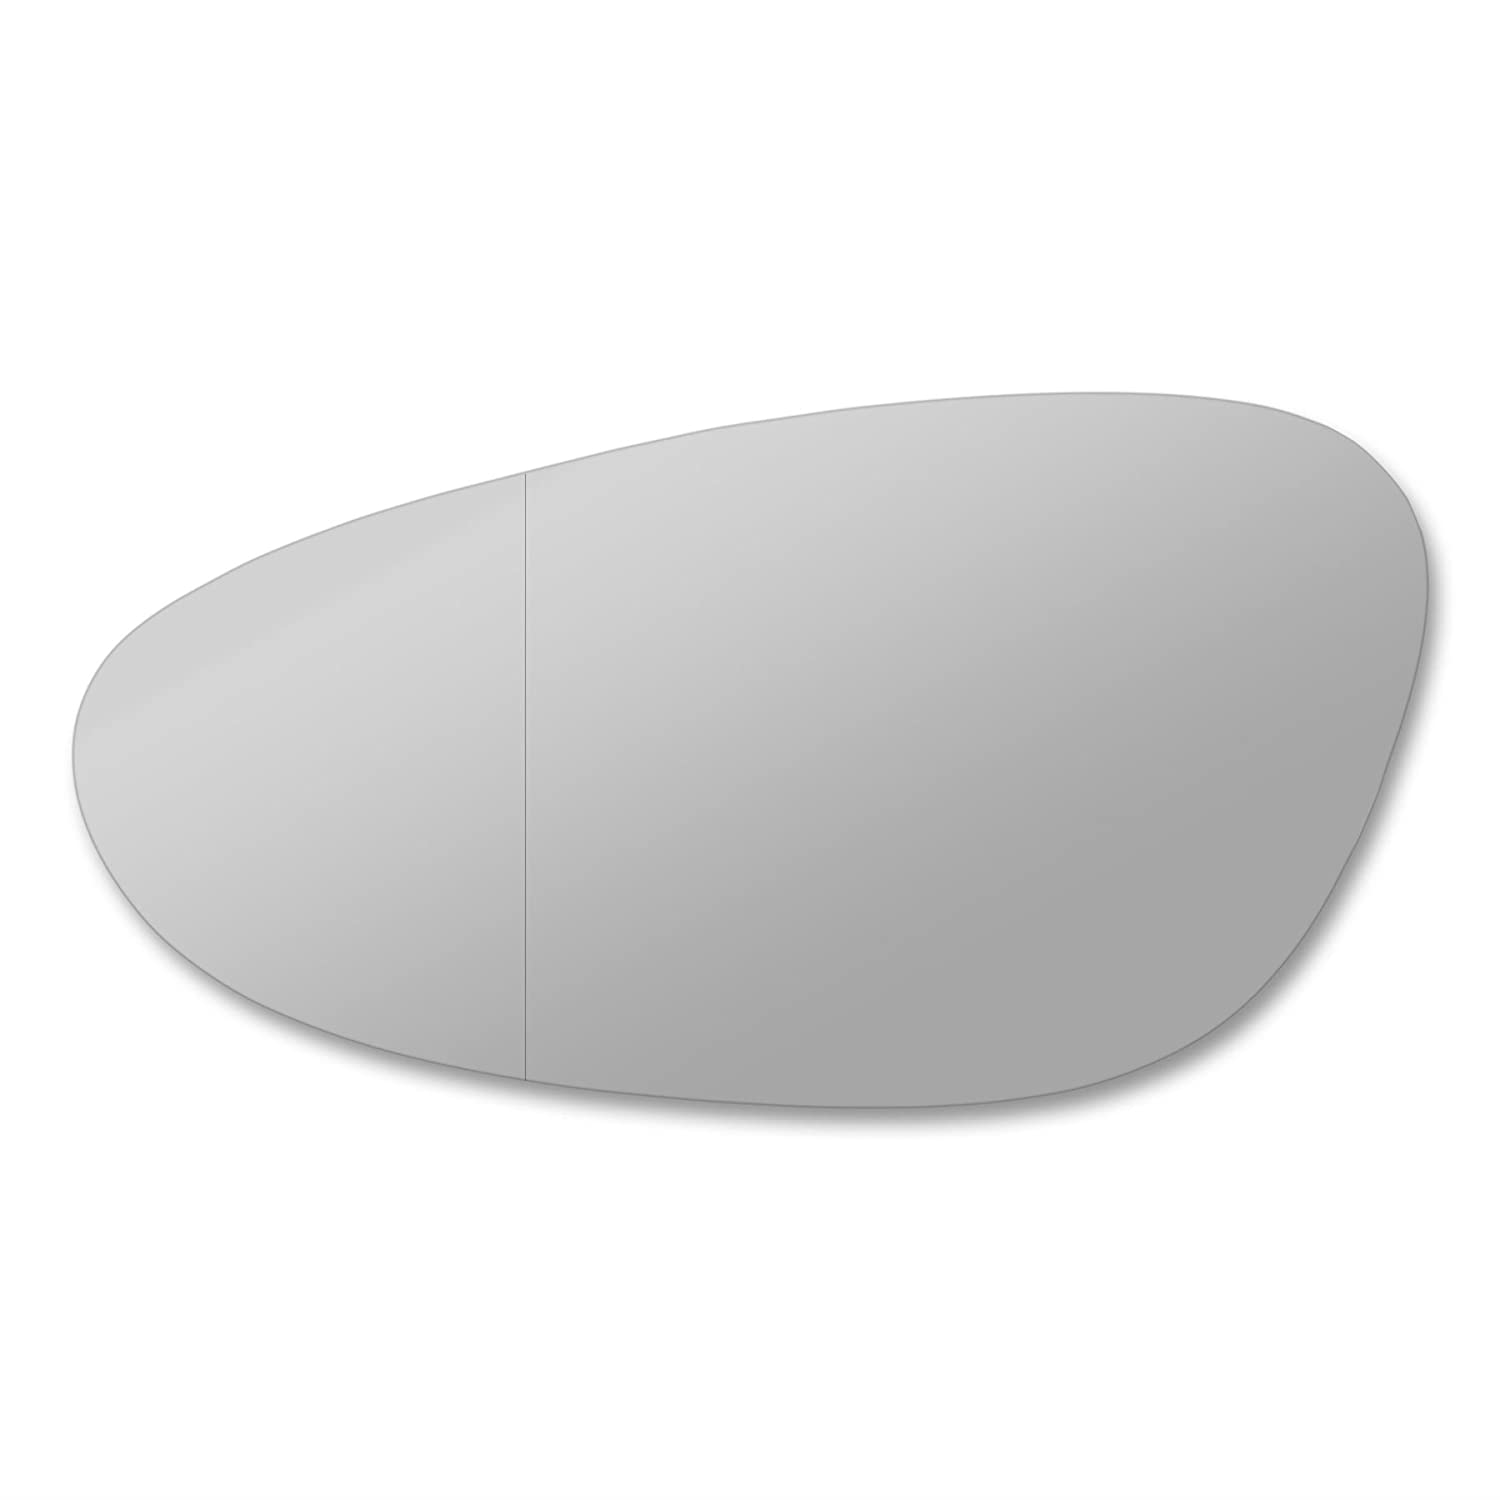 Pobox. Left side wing mirror glass. Real glass, door stick on mirror replacement Passenger side quick fix silver #Pobo-98/04-L_wa Sylgab